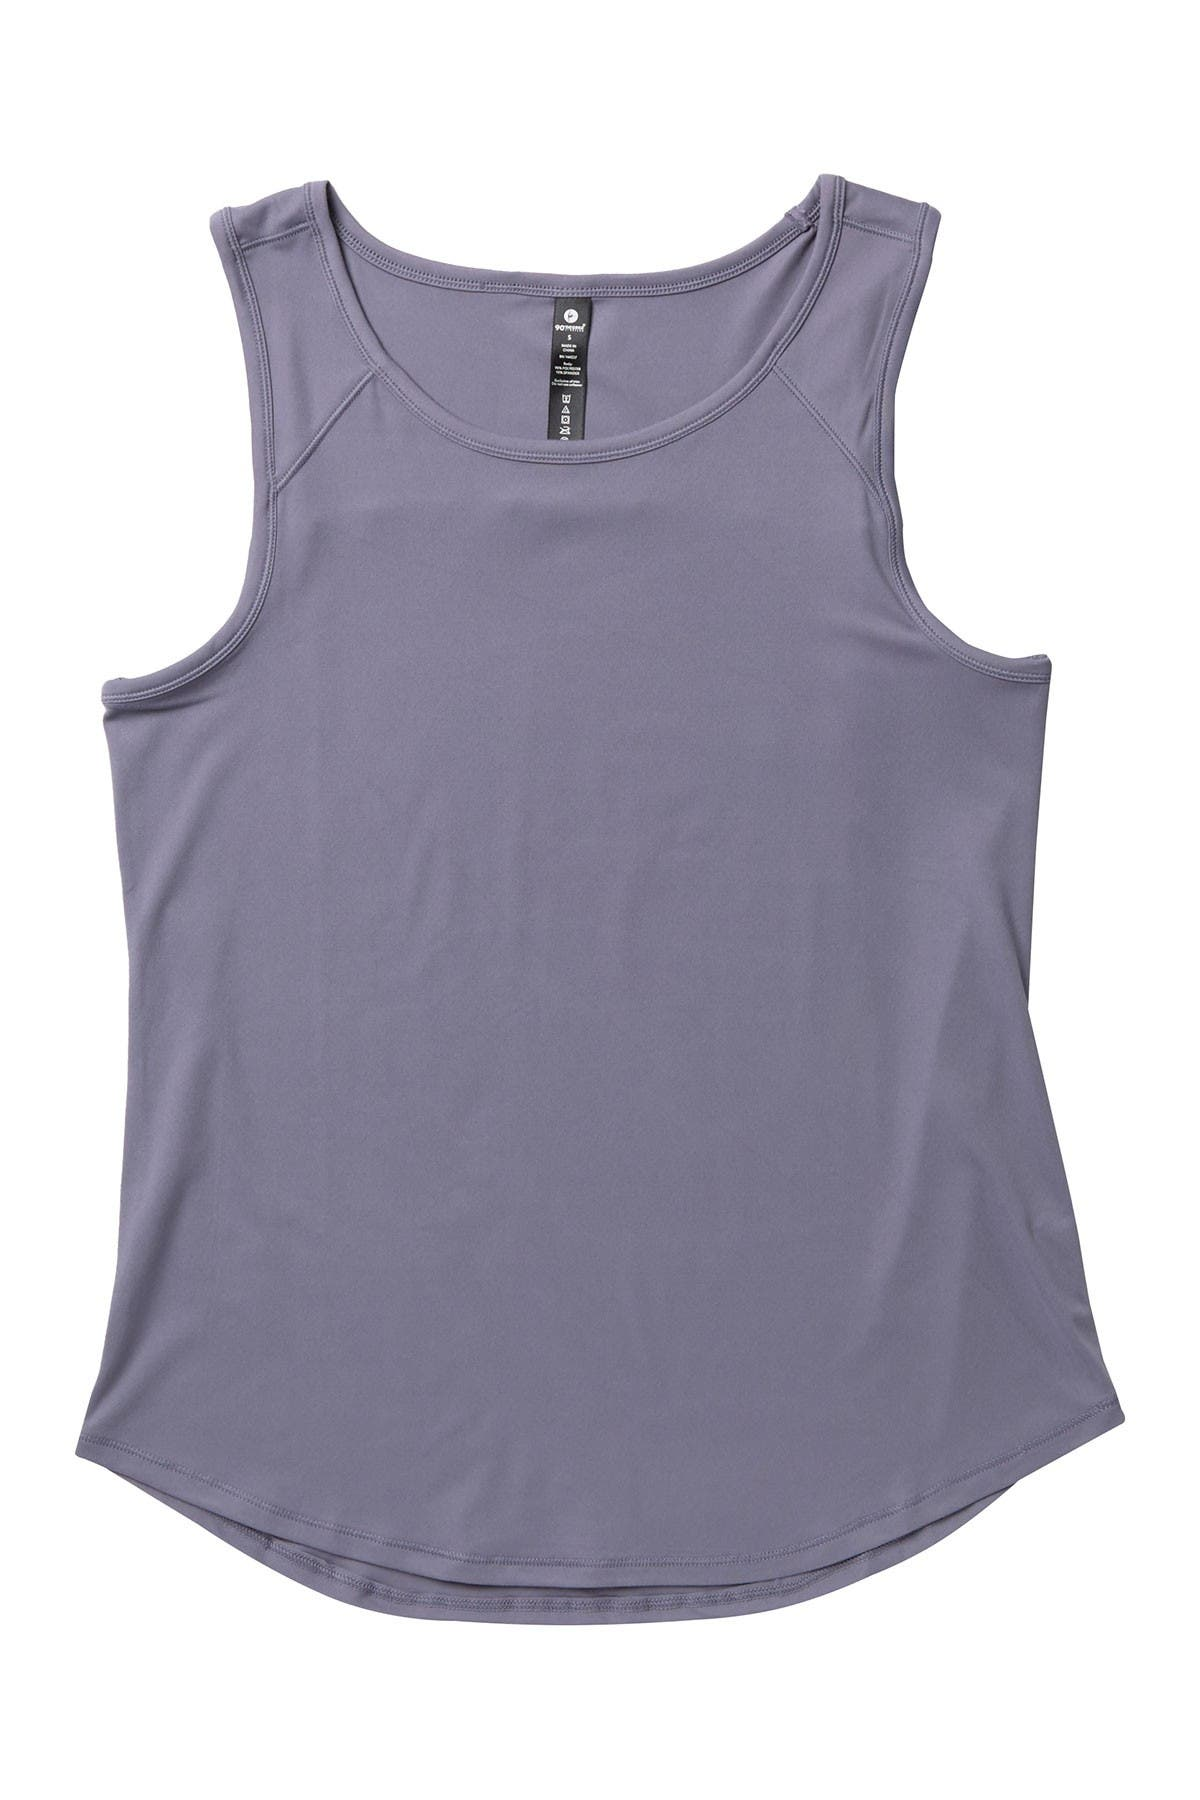 Image of 90 Degree By Reflex Tech Sleeveless Tank